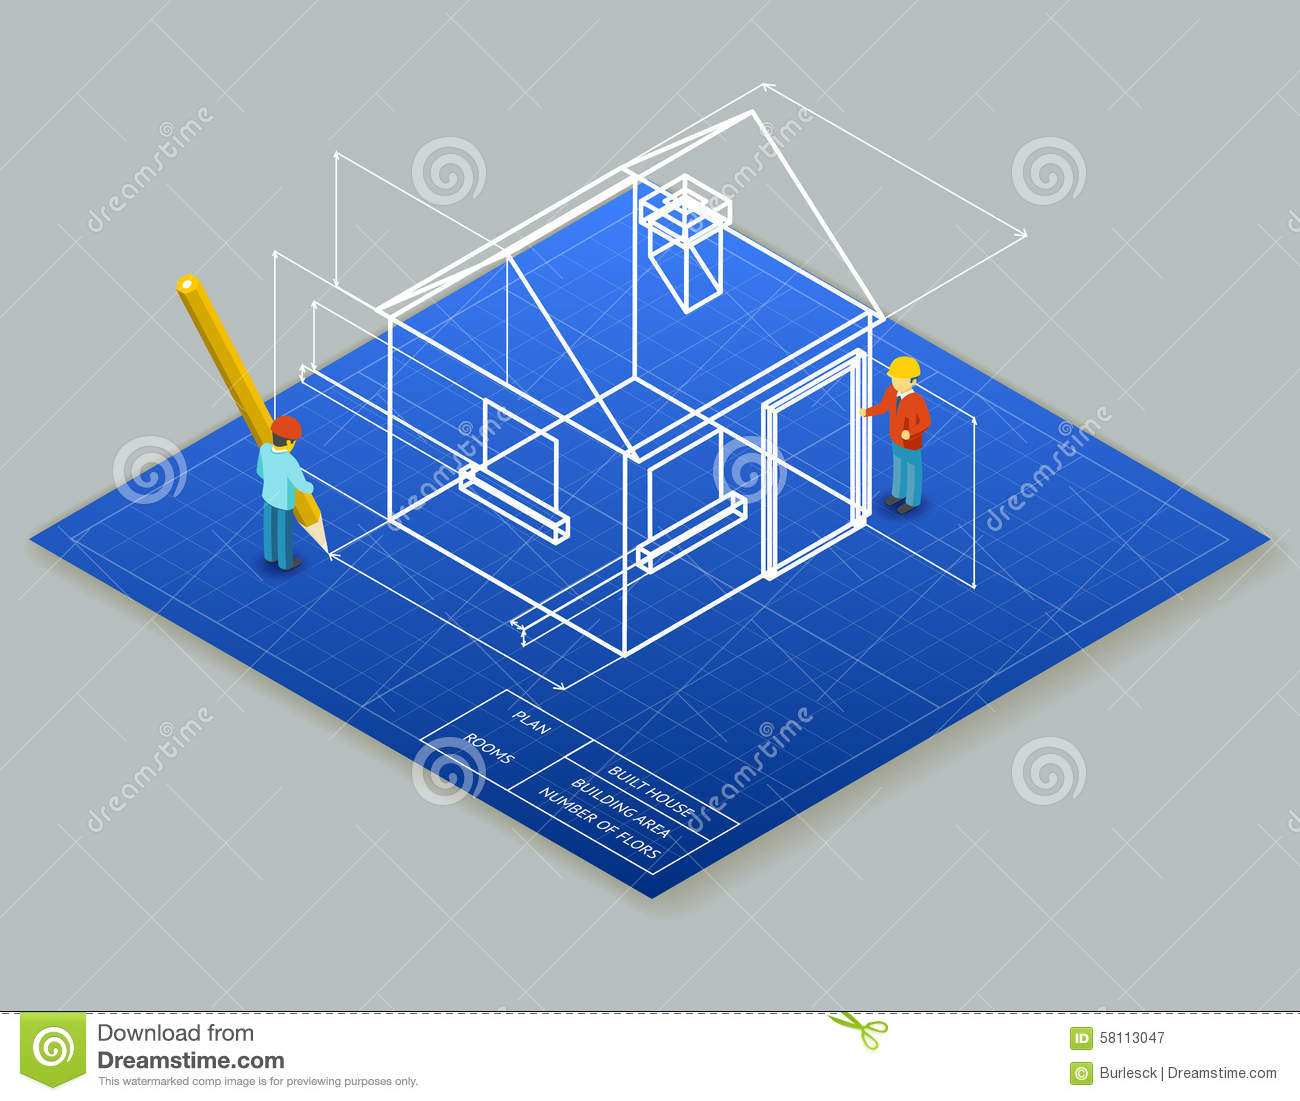 Architectural Design Blueprint Drawing Stock Vector Image